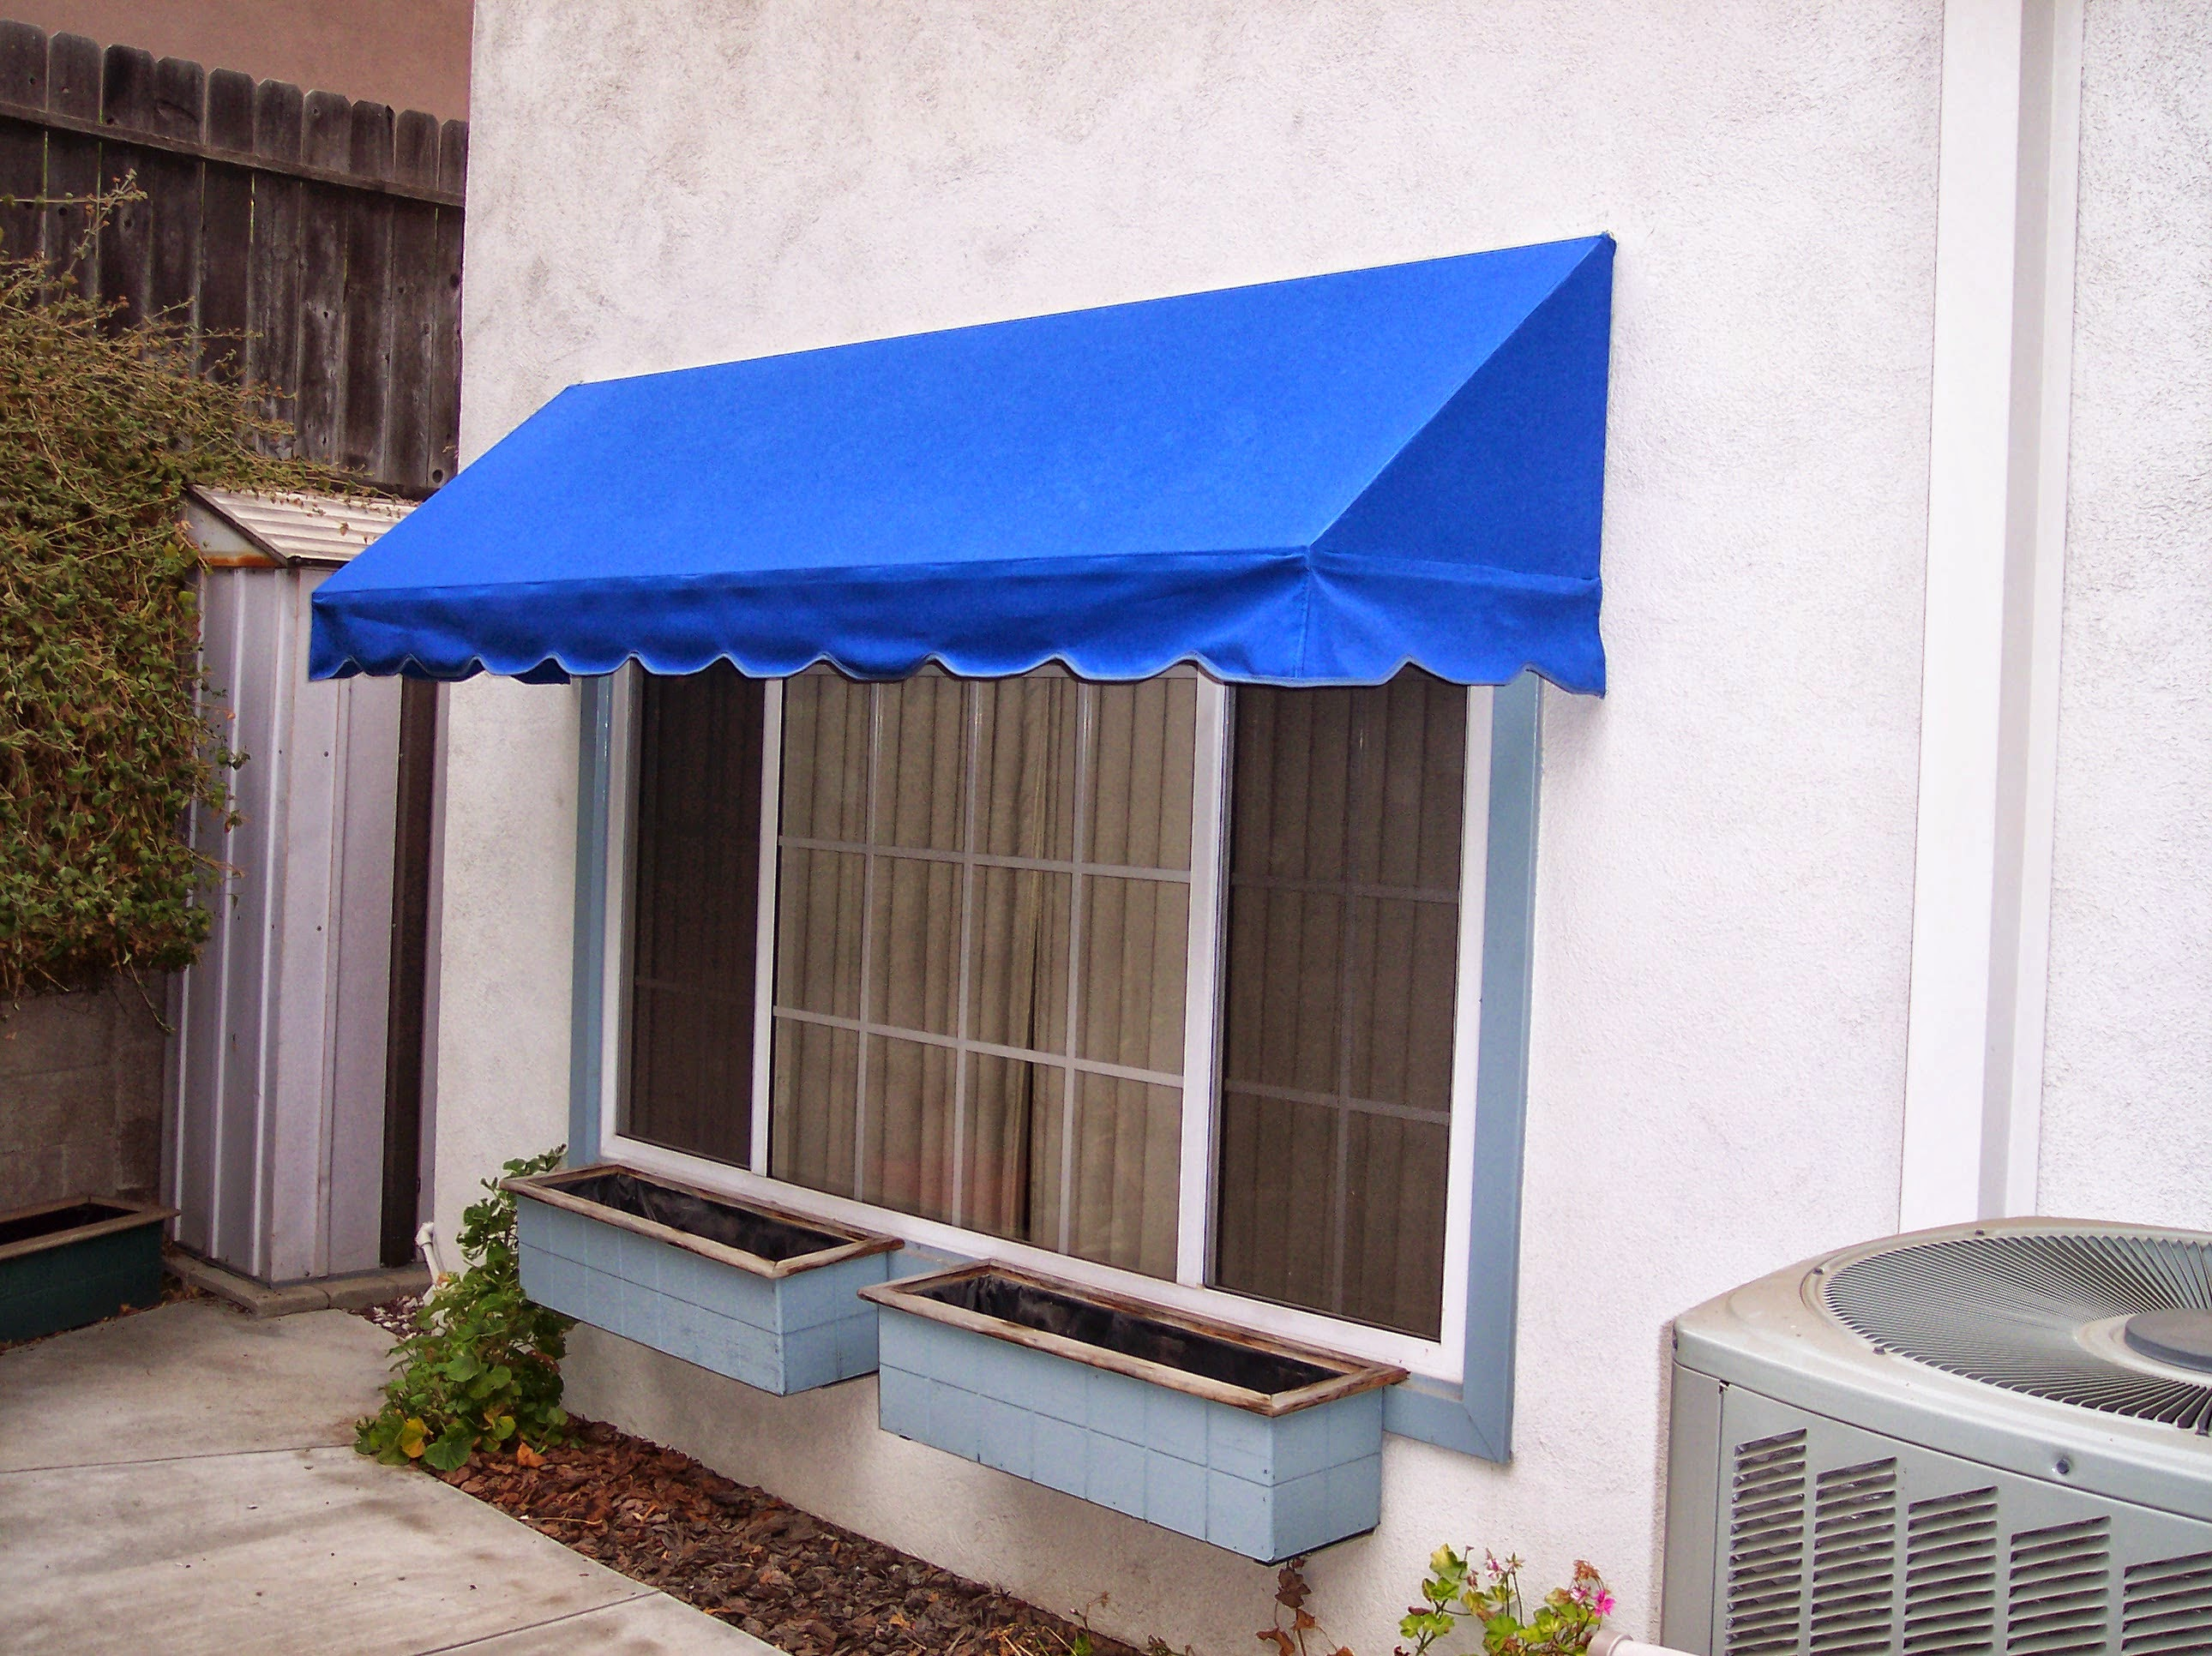 retractable orlando awnings awning freestanding beach daytona terrace fl coast space